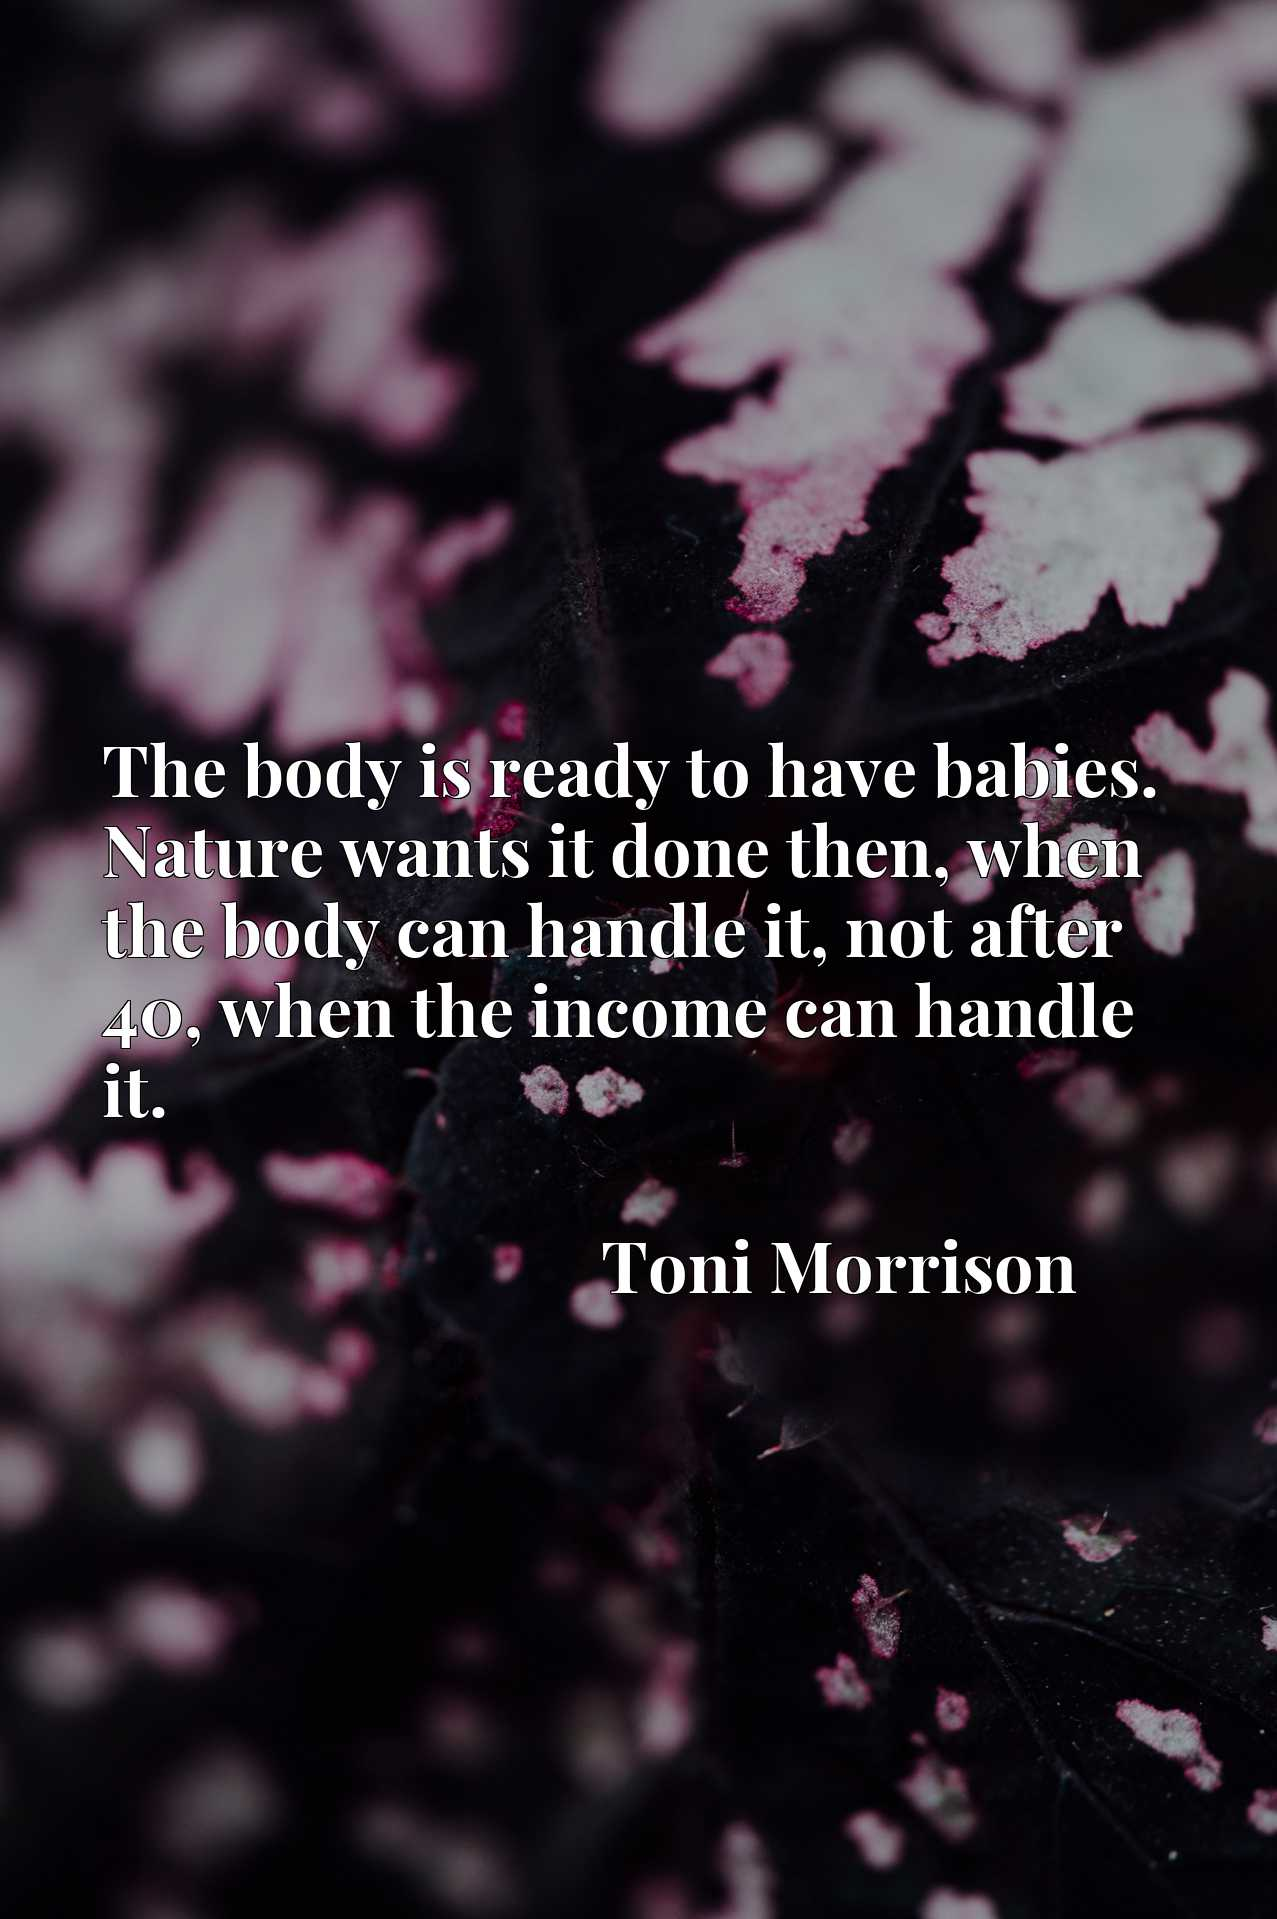 Quote Picture :The body is ready to have babies. Nature wants it done then, when the body can handle it, not after 40, when the income can handle it.